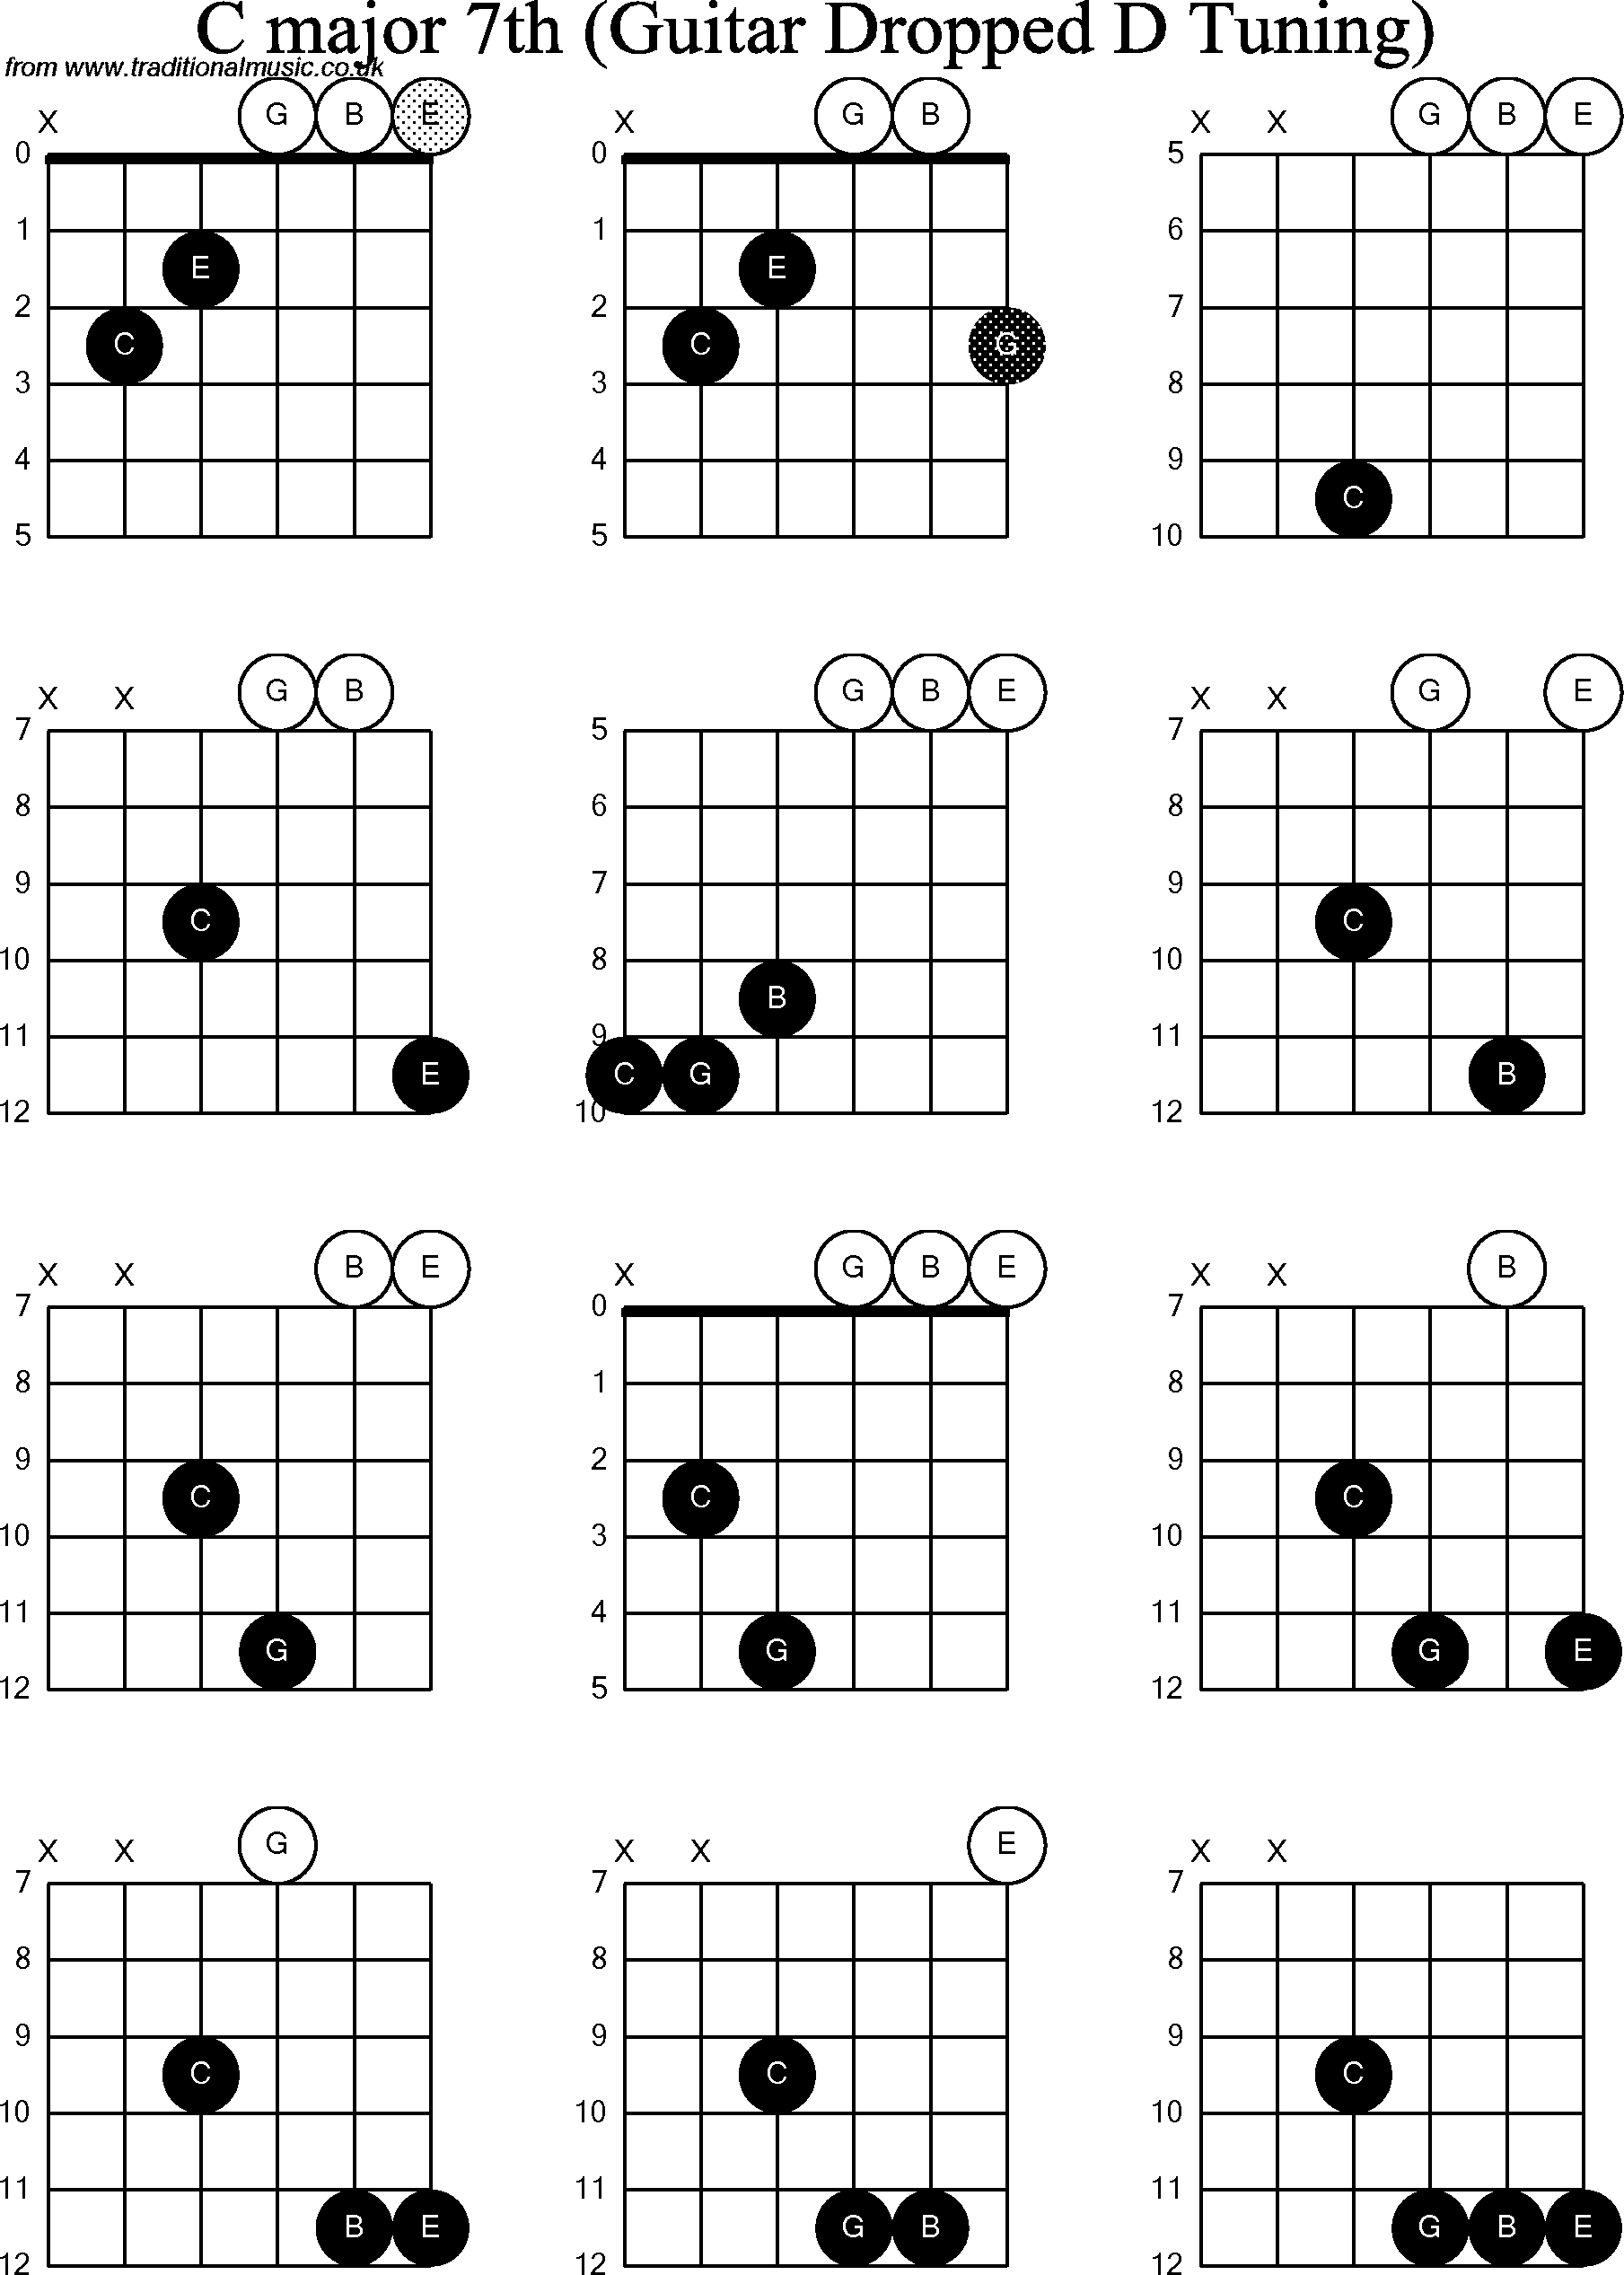 Chord diagrams for dropped d guitardadgbe c major7th chord diagrams for dropped d guitardadgbe c major7th hexwebz Choice Image